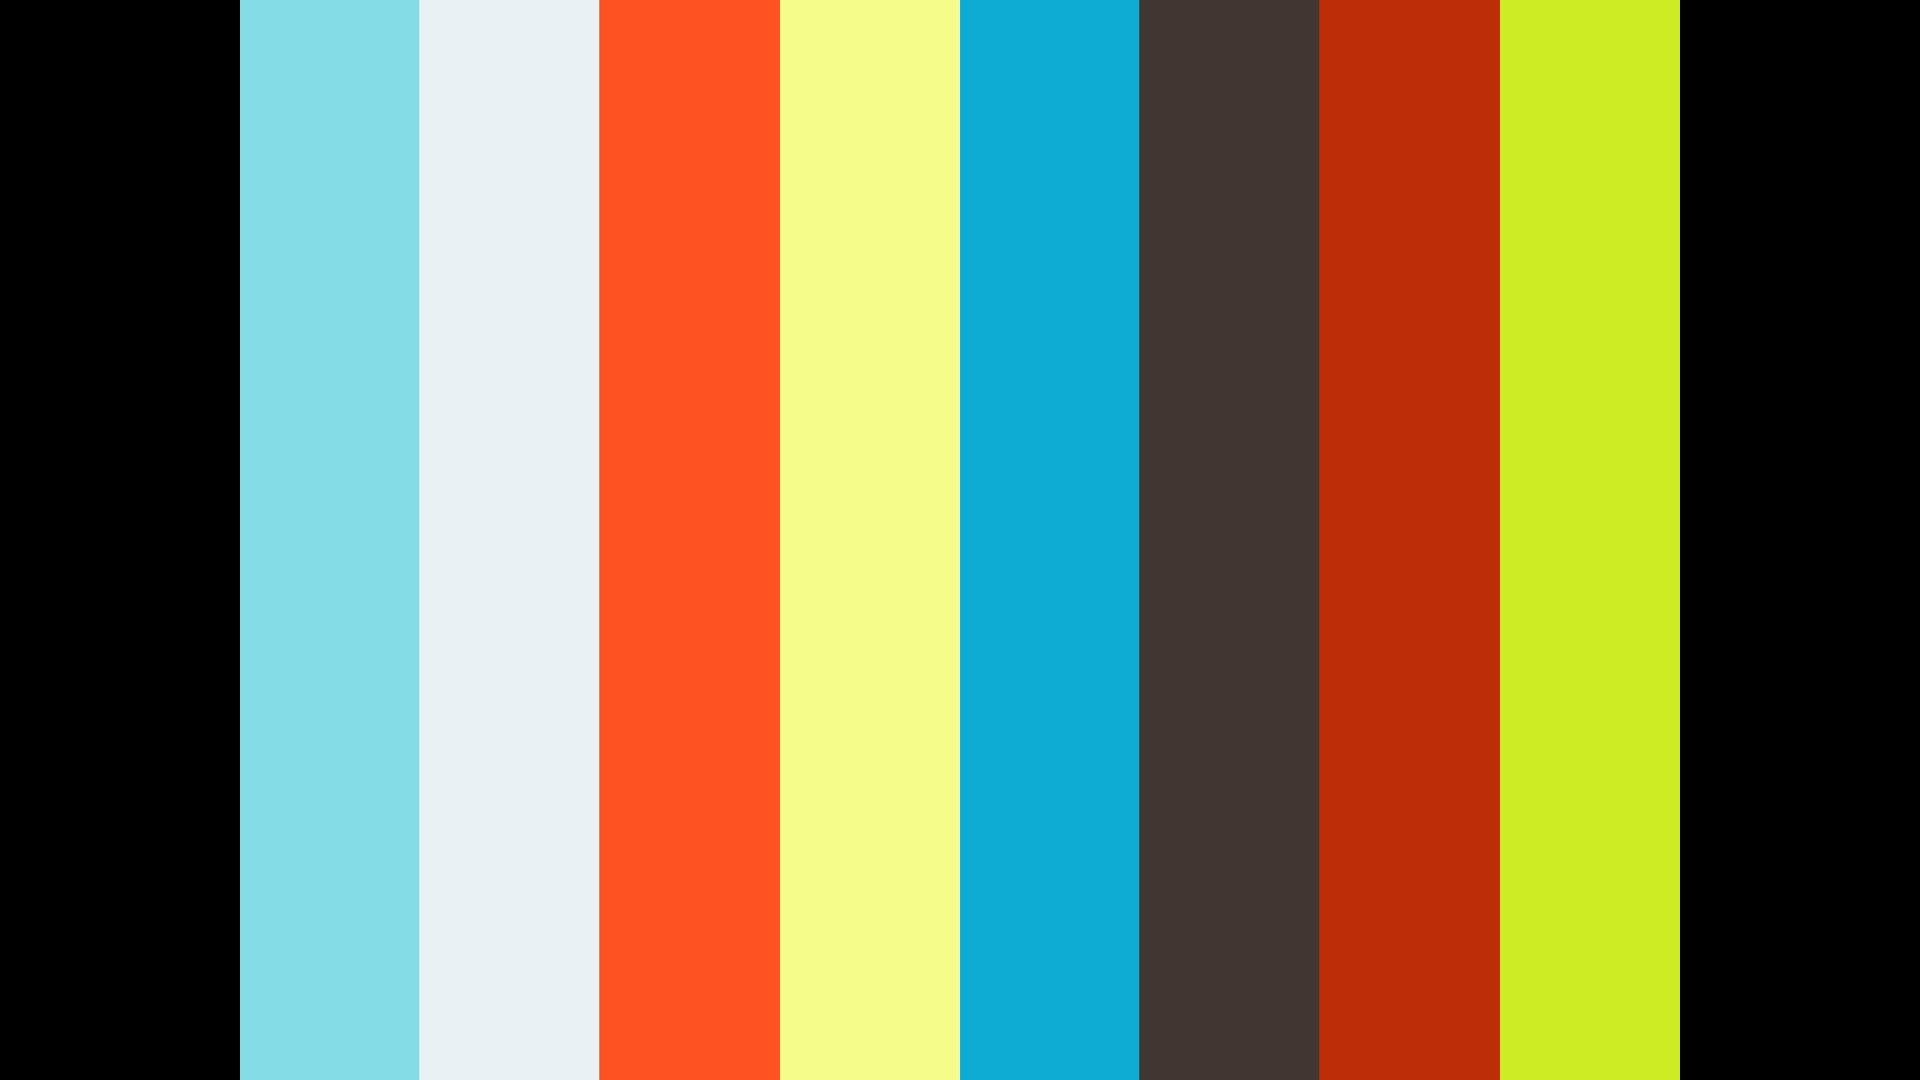 Introduction of Christiane Voss by Anna Tuschling [3, 1]